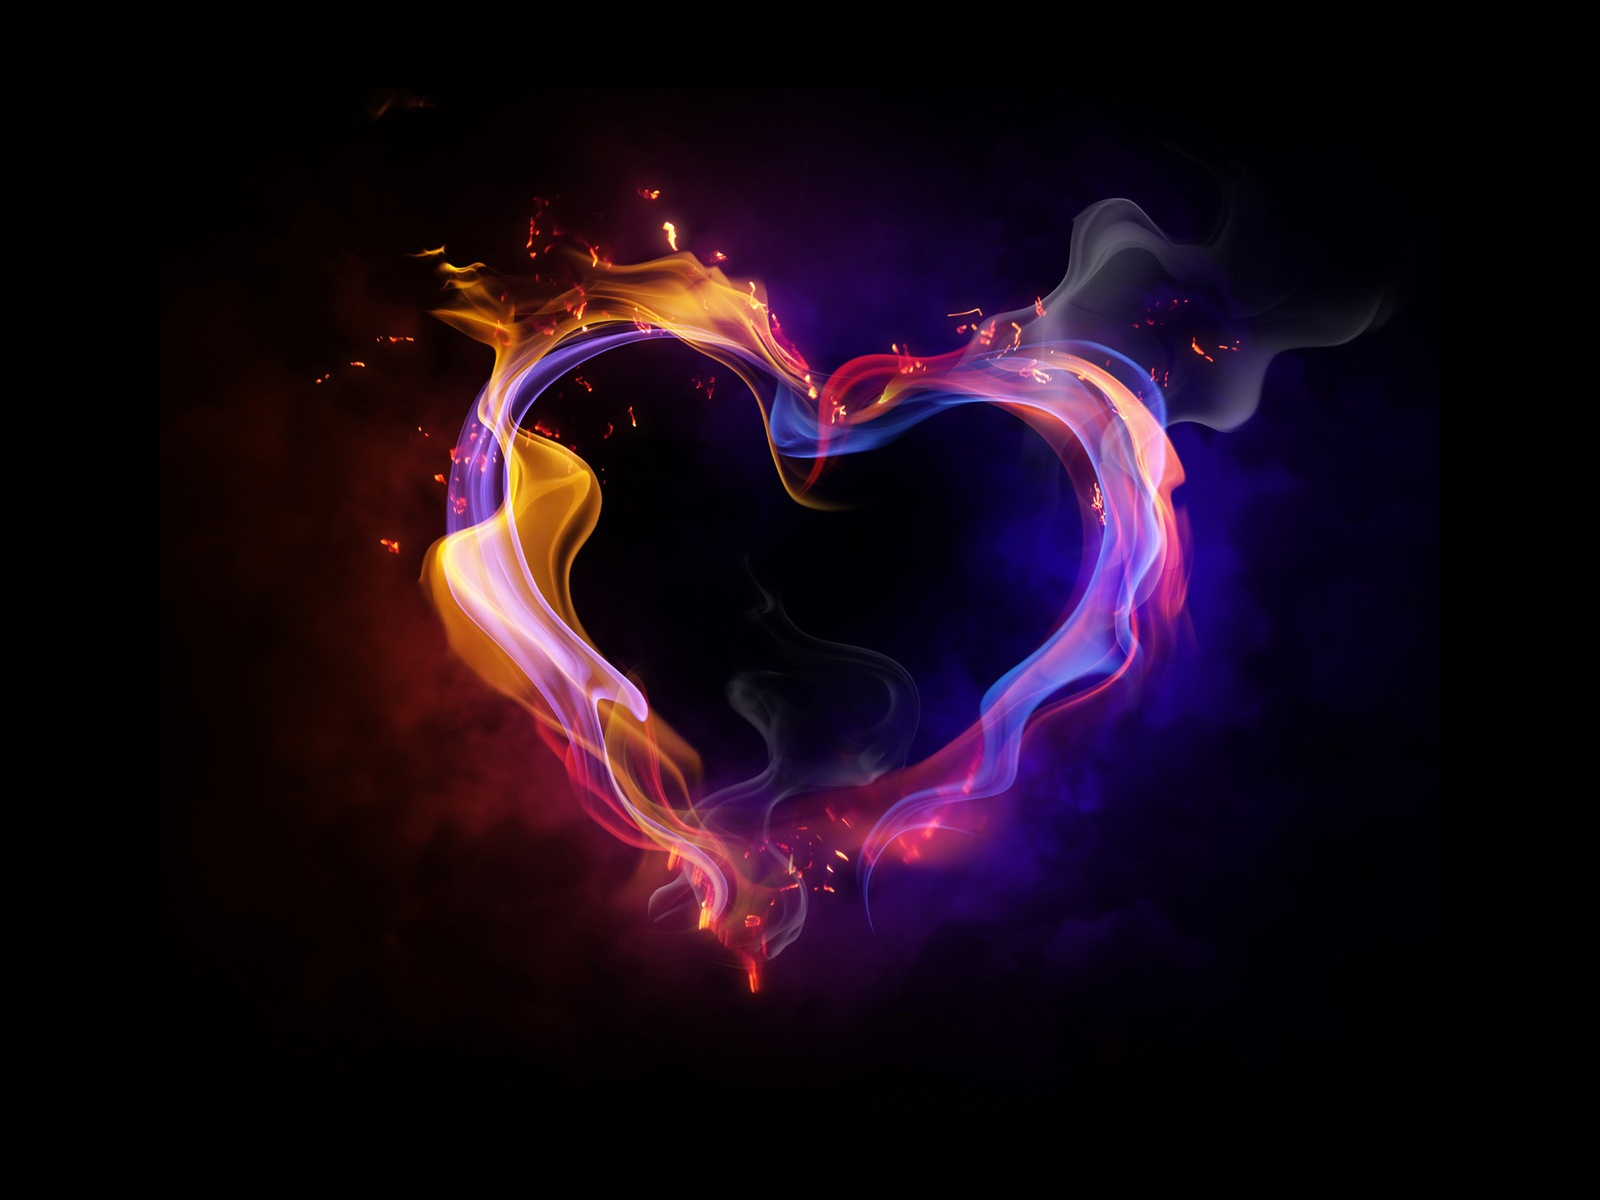 Walls 9 Fire Heart Love Hd Wallpaper 1080p